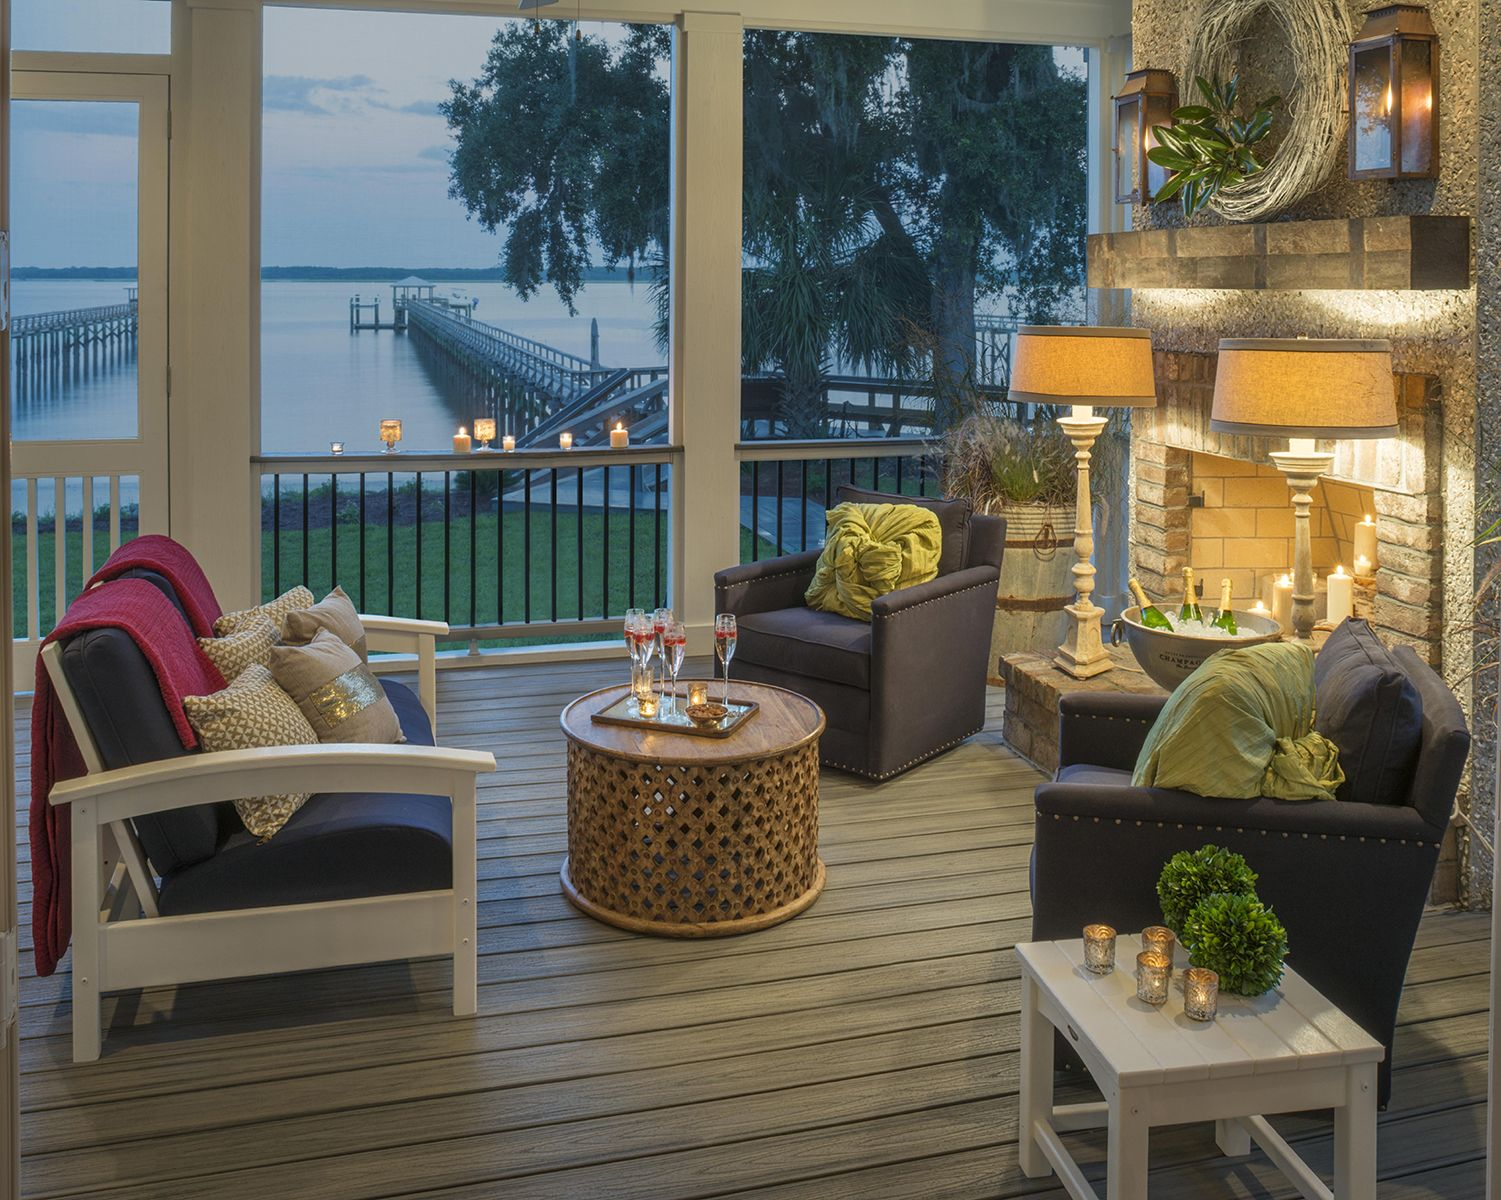 A Cozy Screened In Trex Porch Is The Perfect Spot To Curl